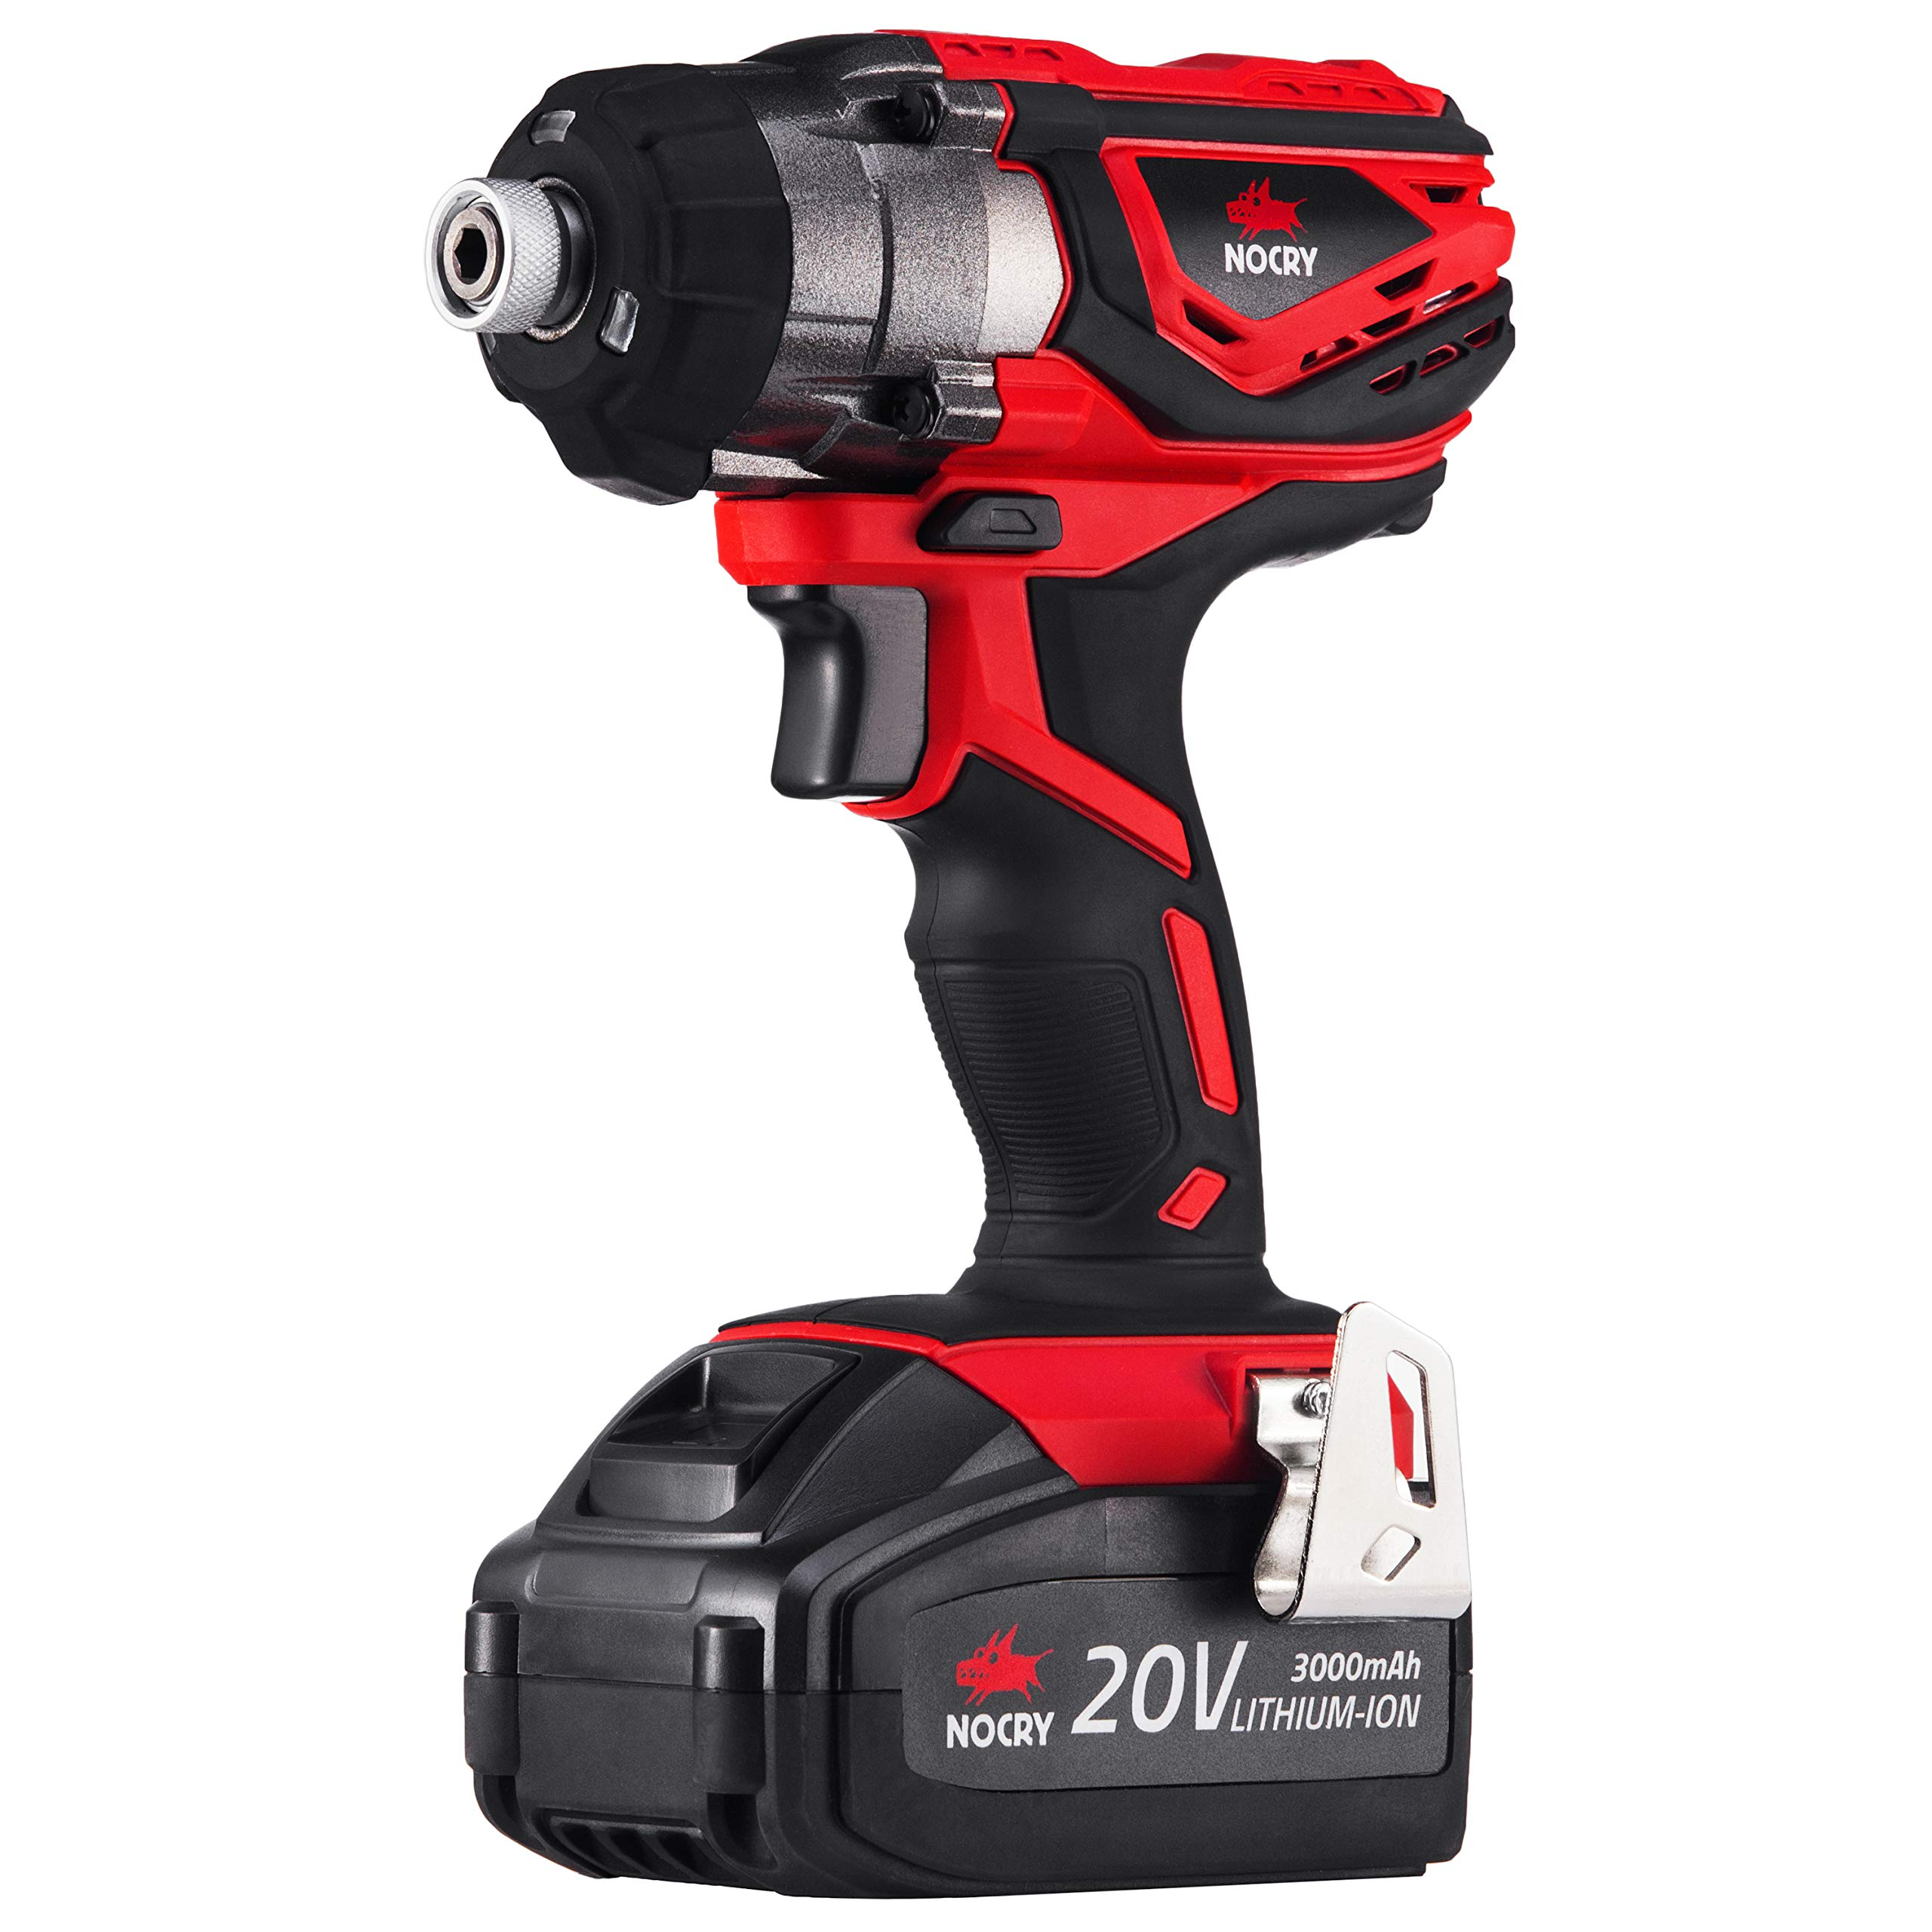 NoCry 20V Cordless Impact Driver Kit - 120 ft-lb (160 N.m) Torque, 3000 Max RPM/IPM, 1/4 inch Hex Chuck, LED Work Light, Belt Clip; 3.0 Ah Battery, Fast Charger & Carrying Case Included by NoCry (Image #7)